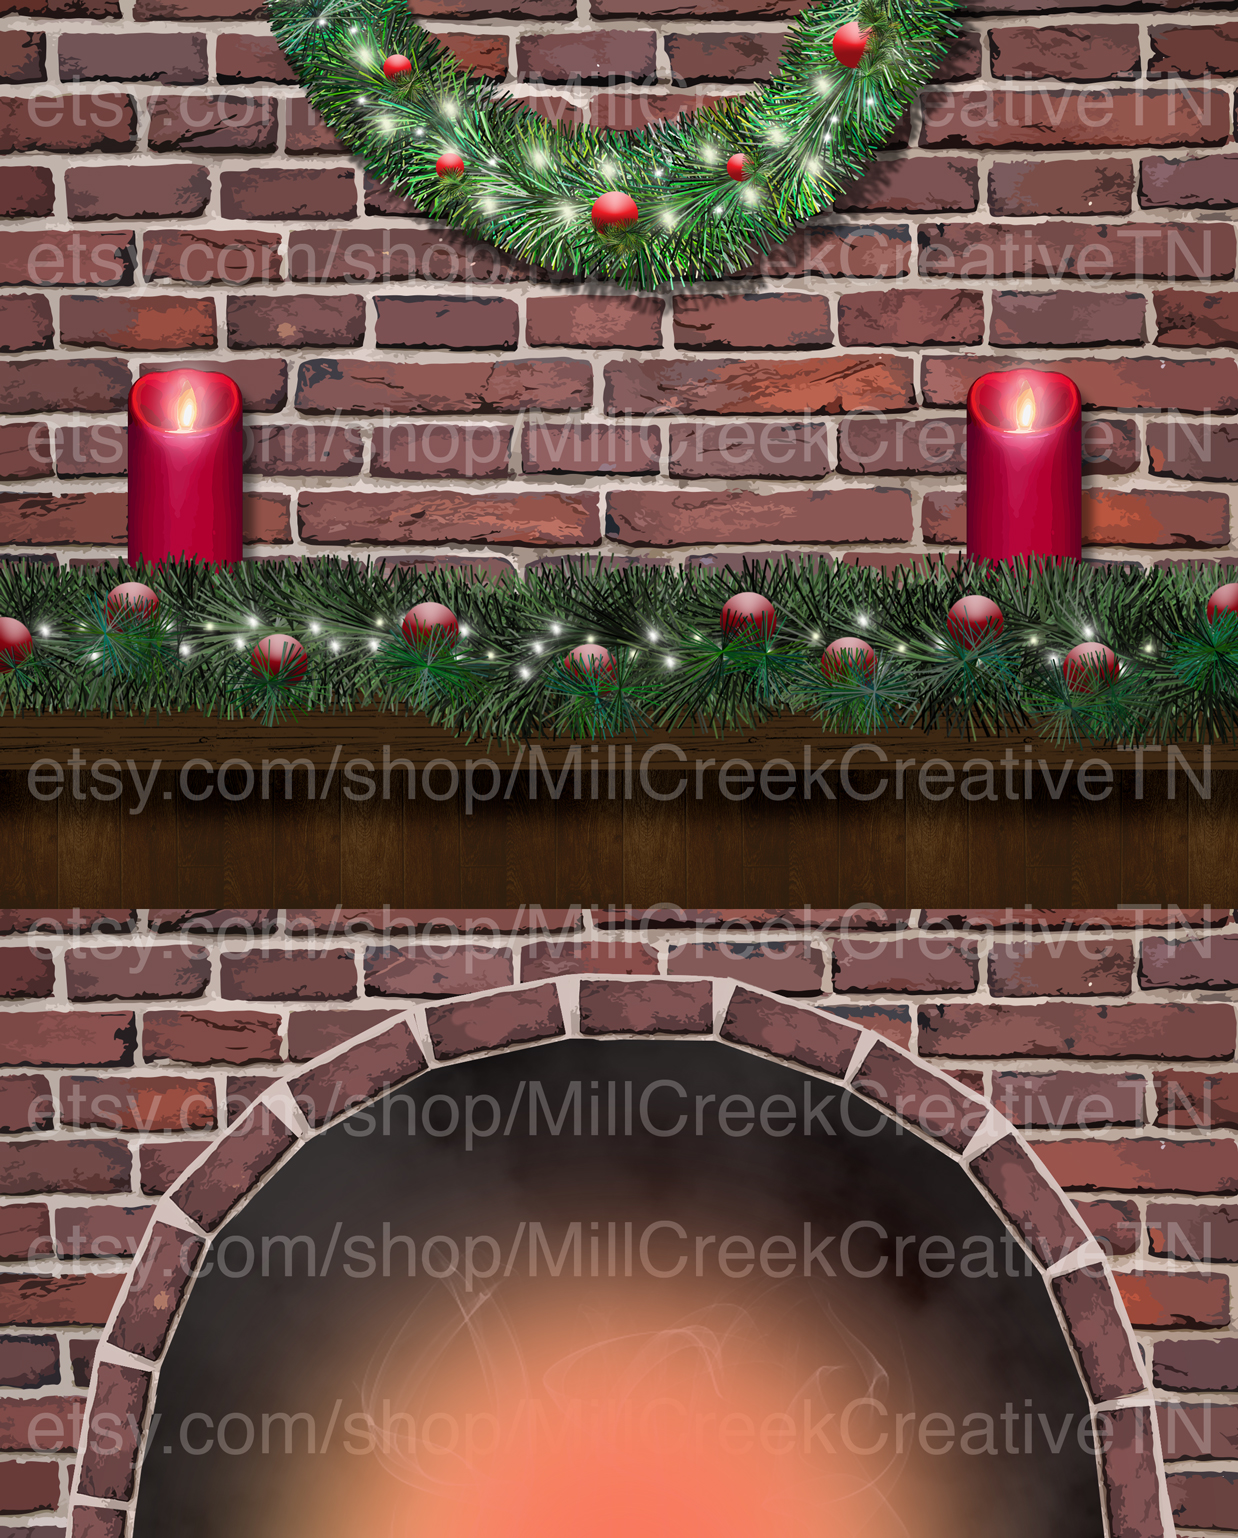 Christmas Fireplace Design | Mill Creek Creative